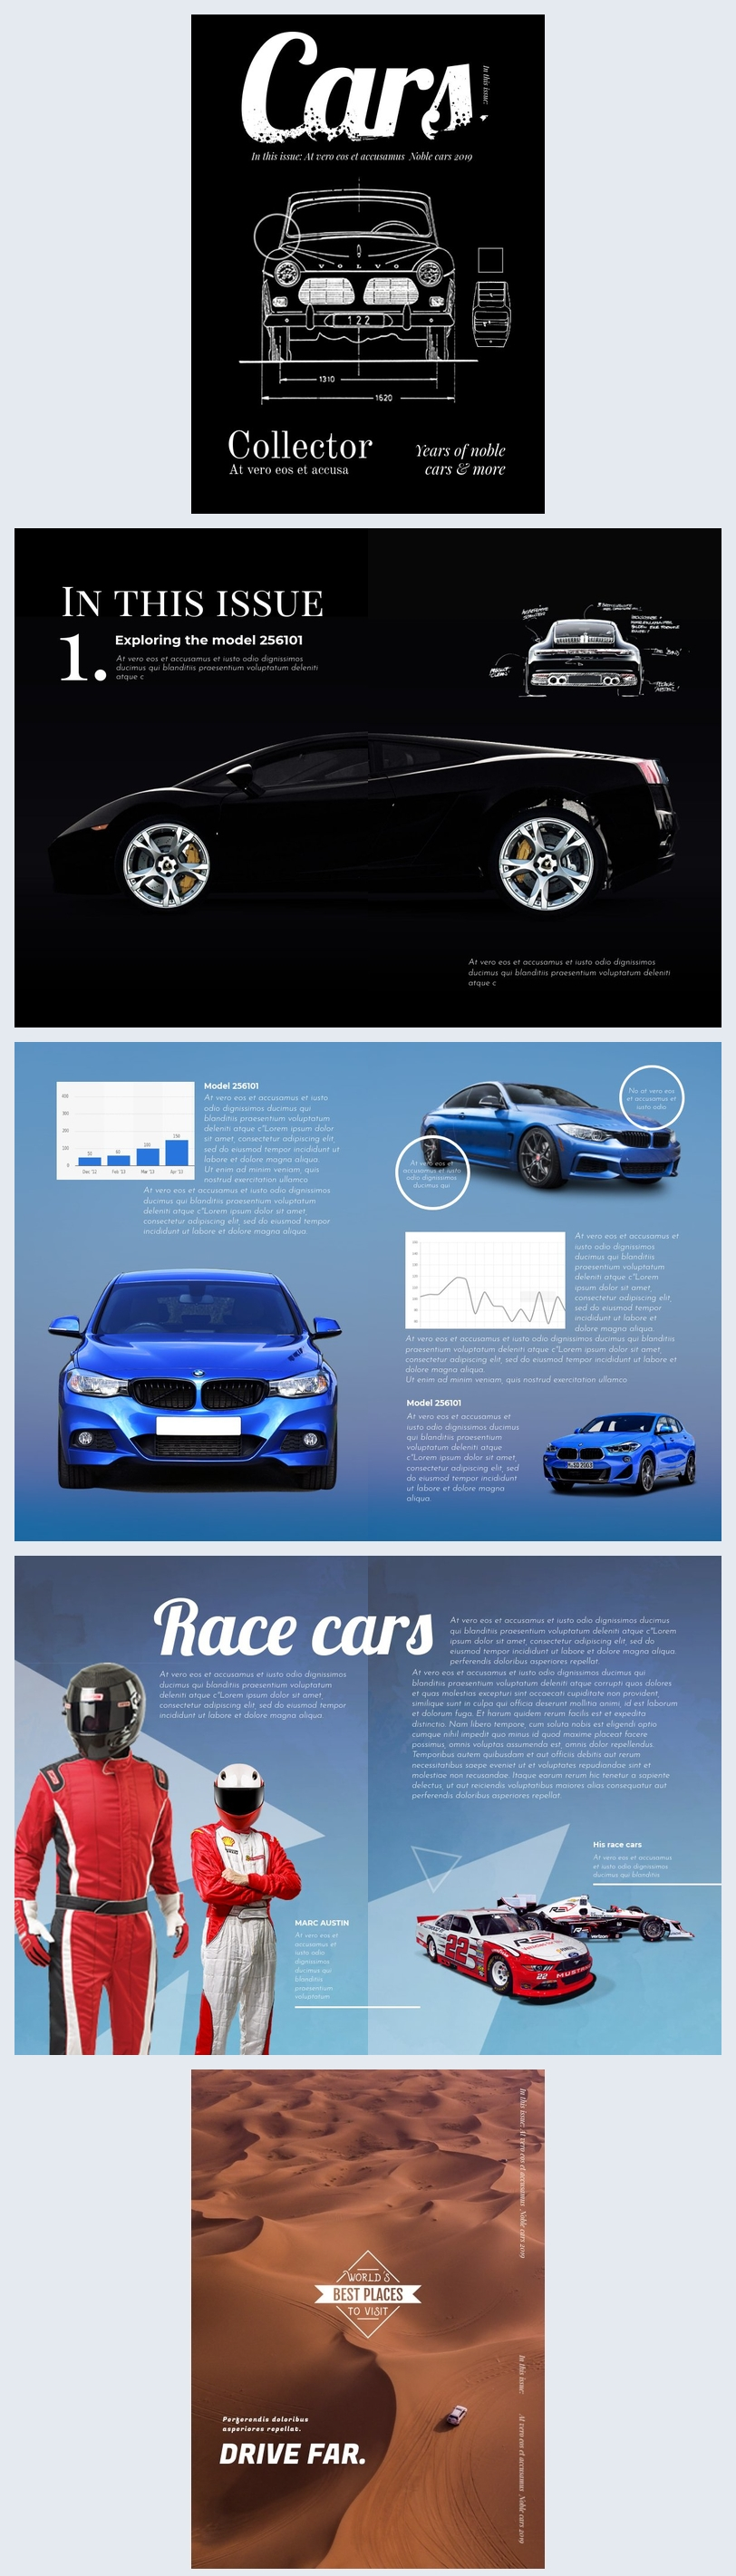 Car Magazine Template & Design